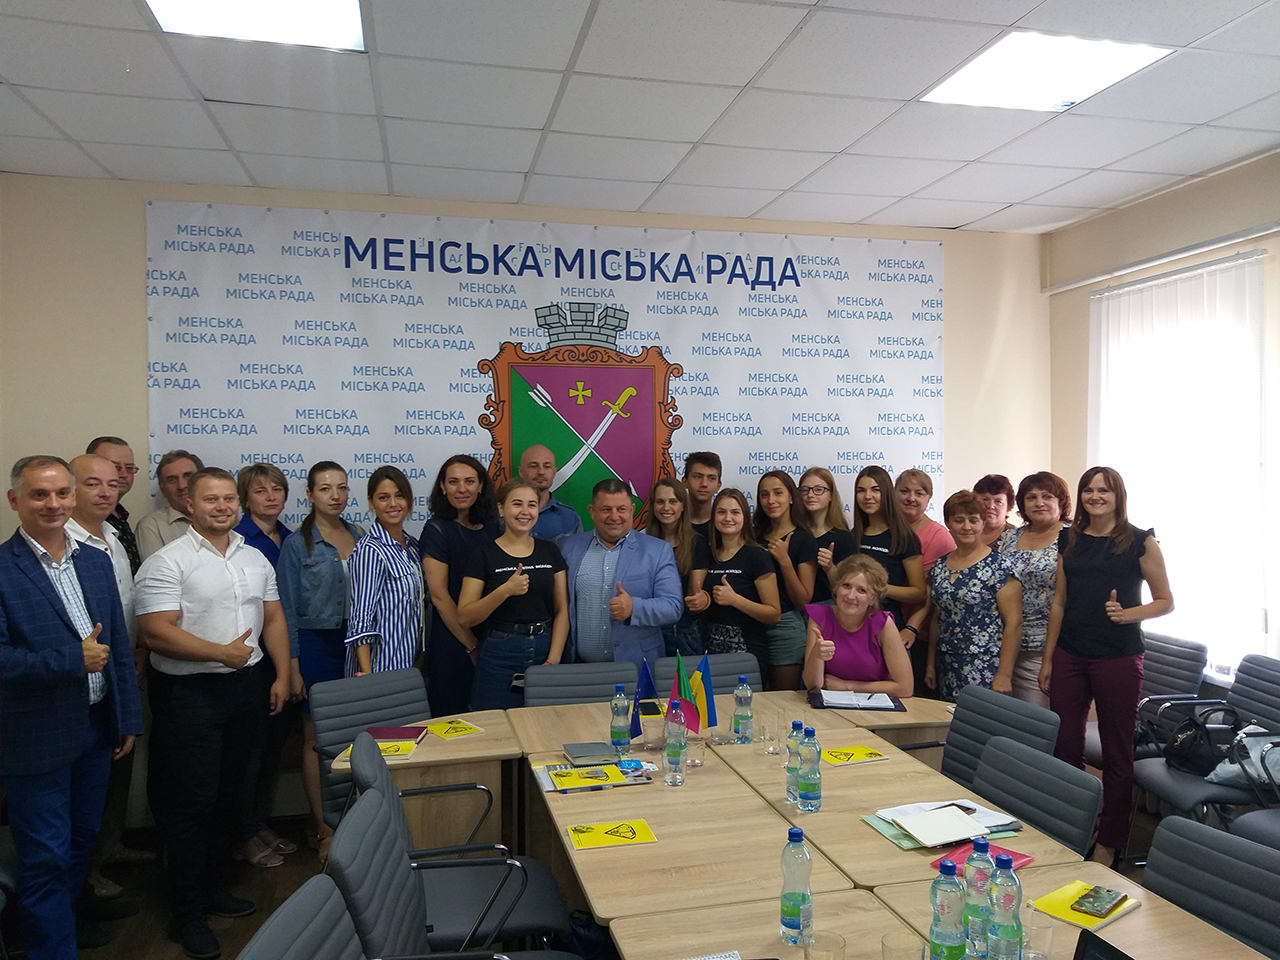 Menskoye UTC held its first working meeting on the initiative